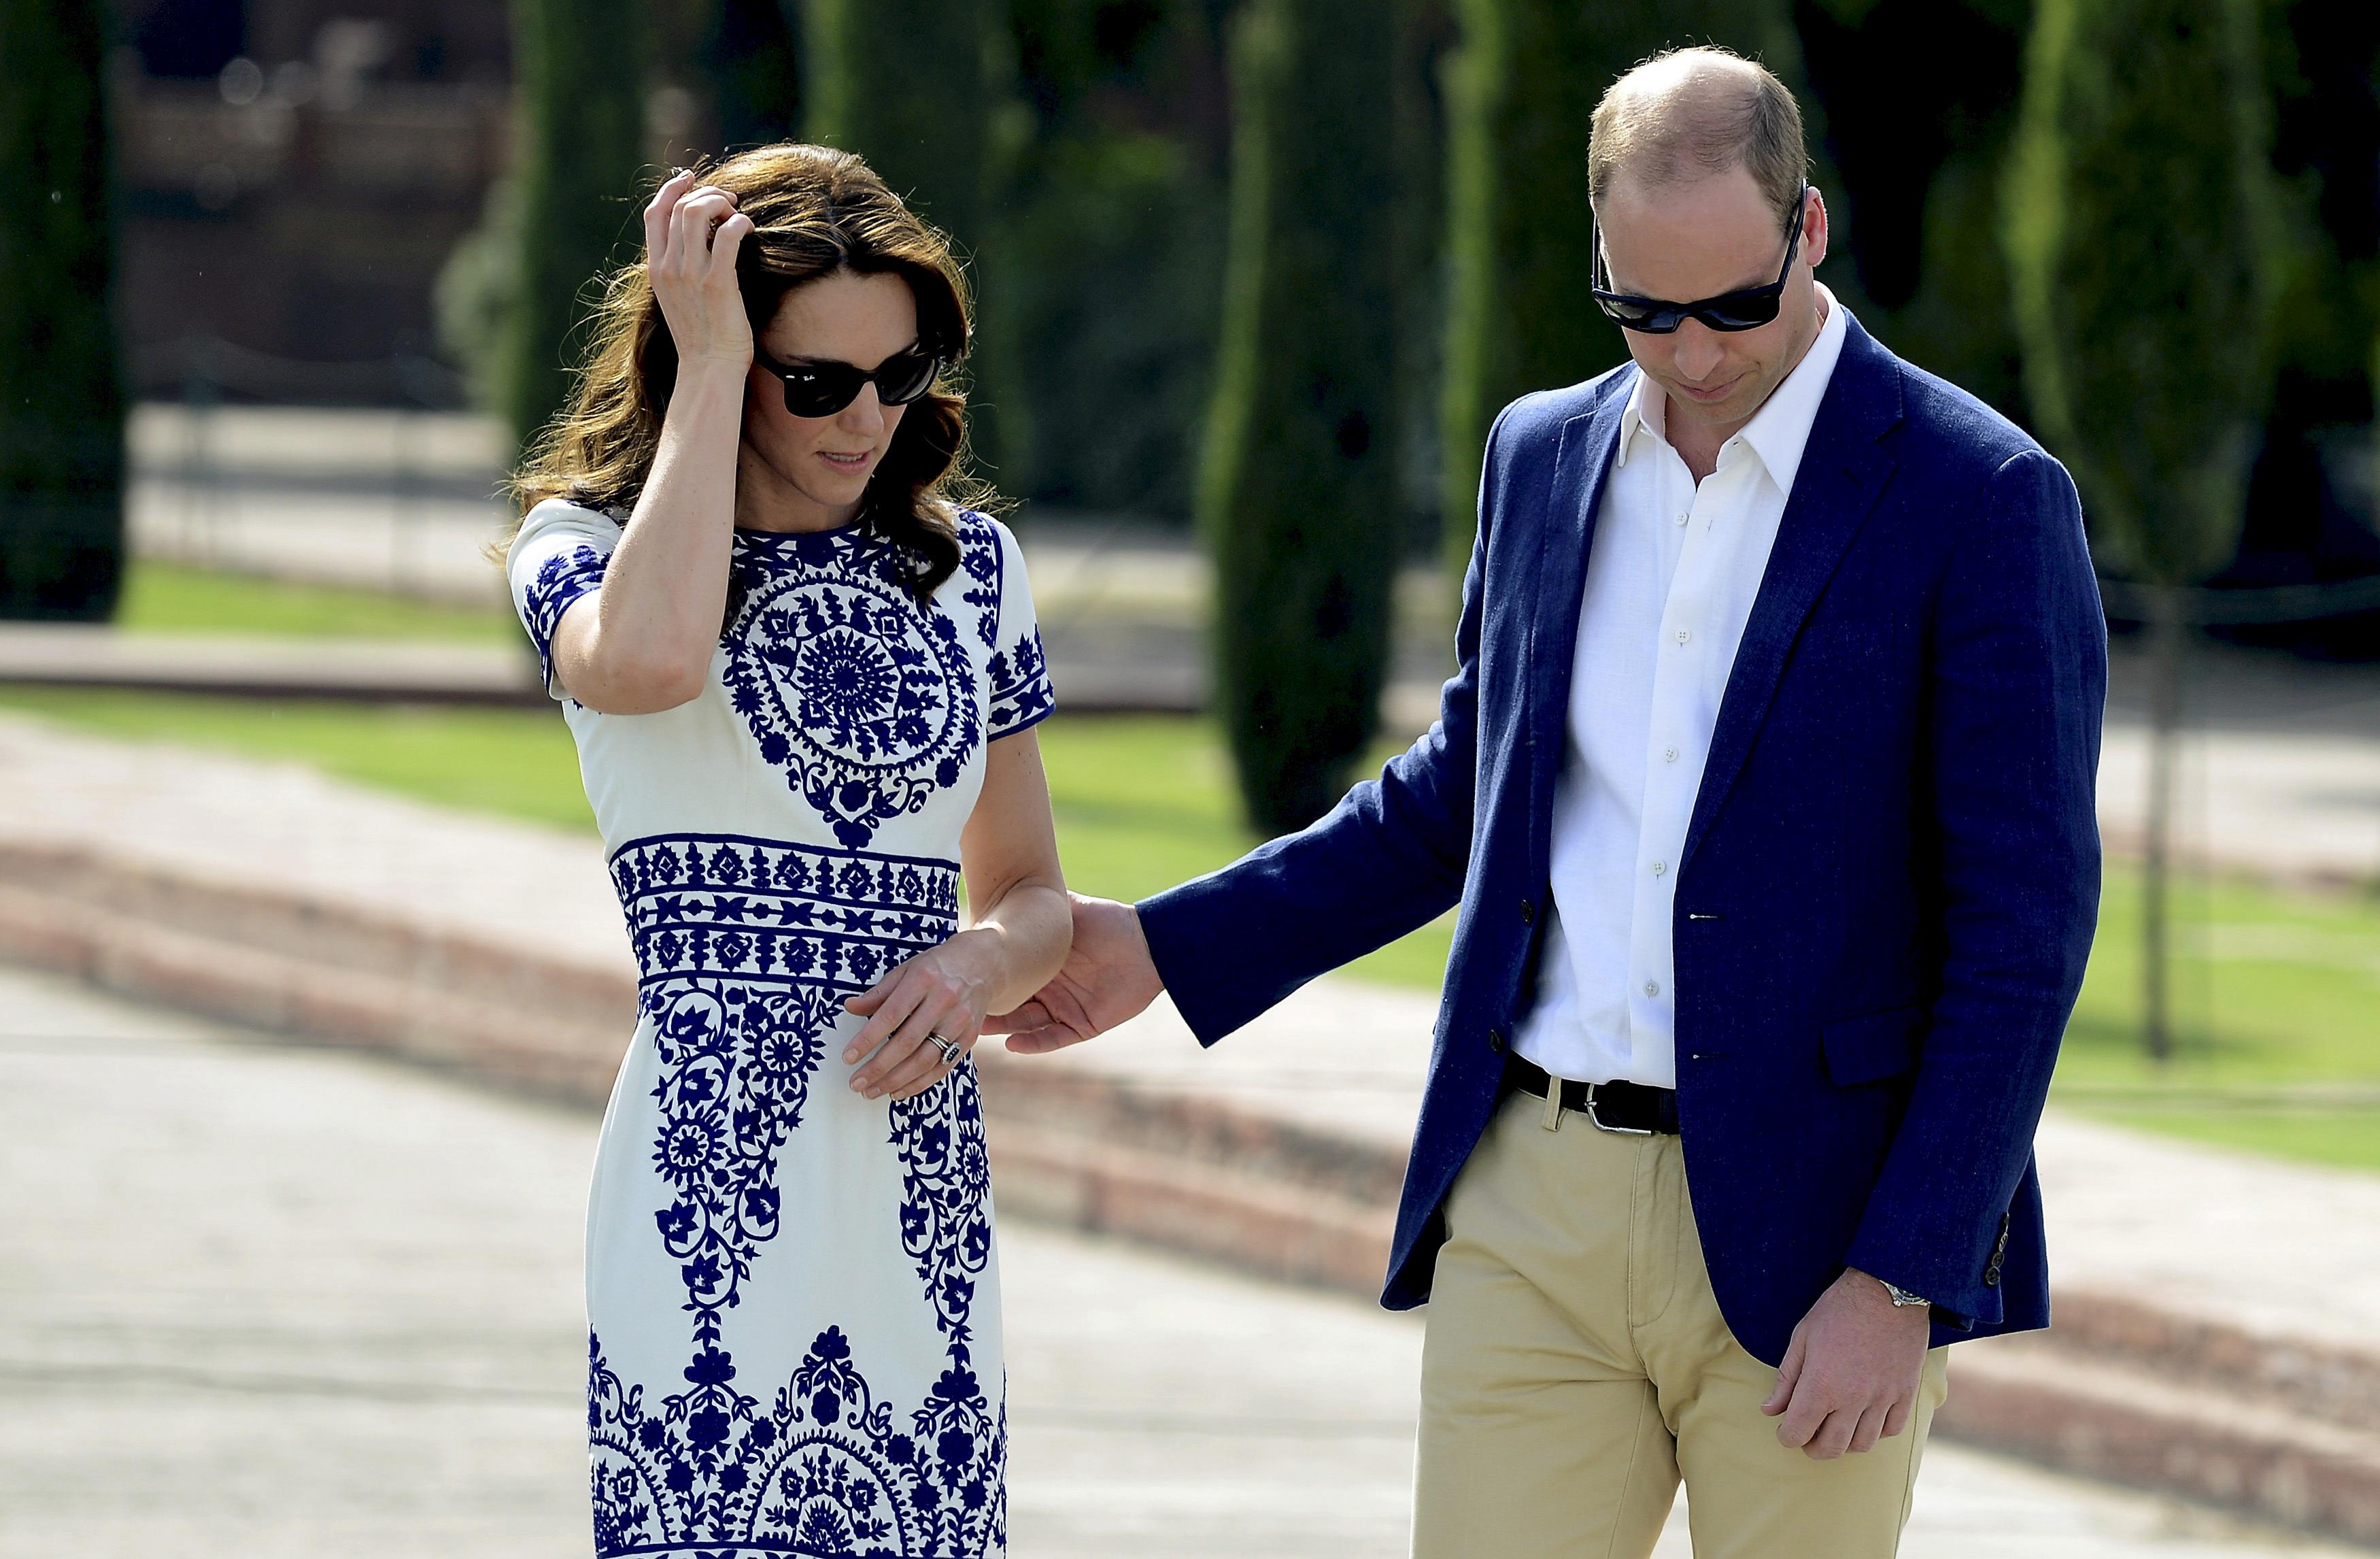 Prince William and his wife Kate Middleton